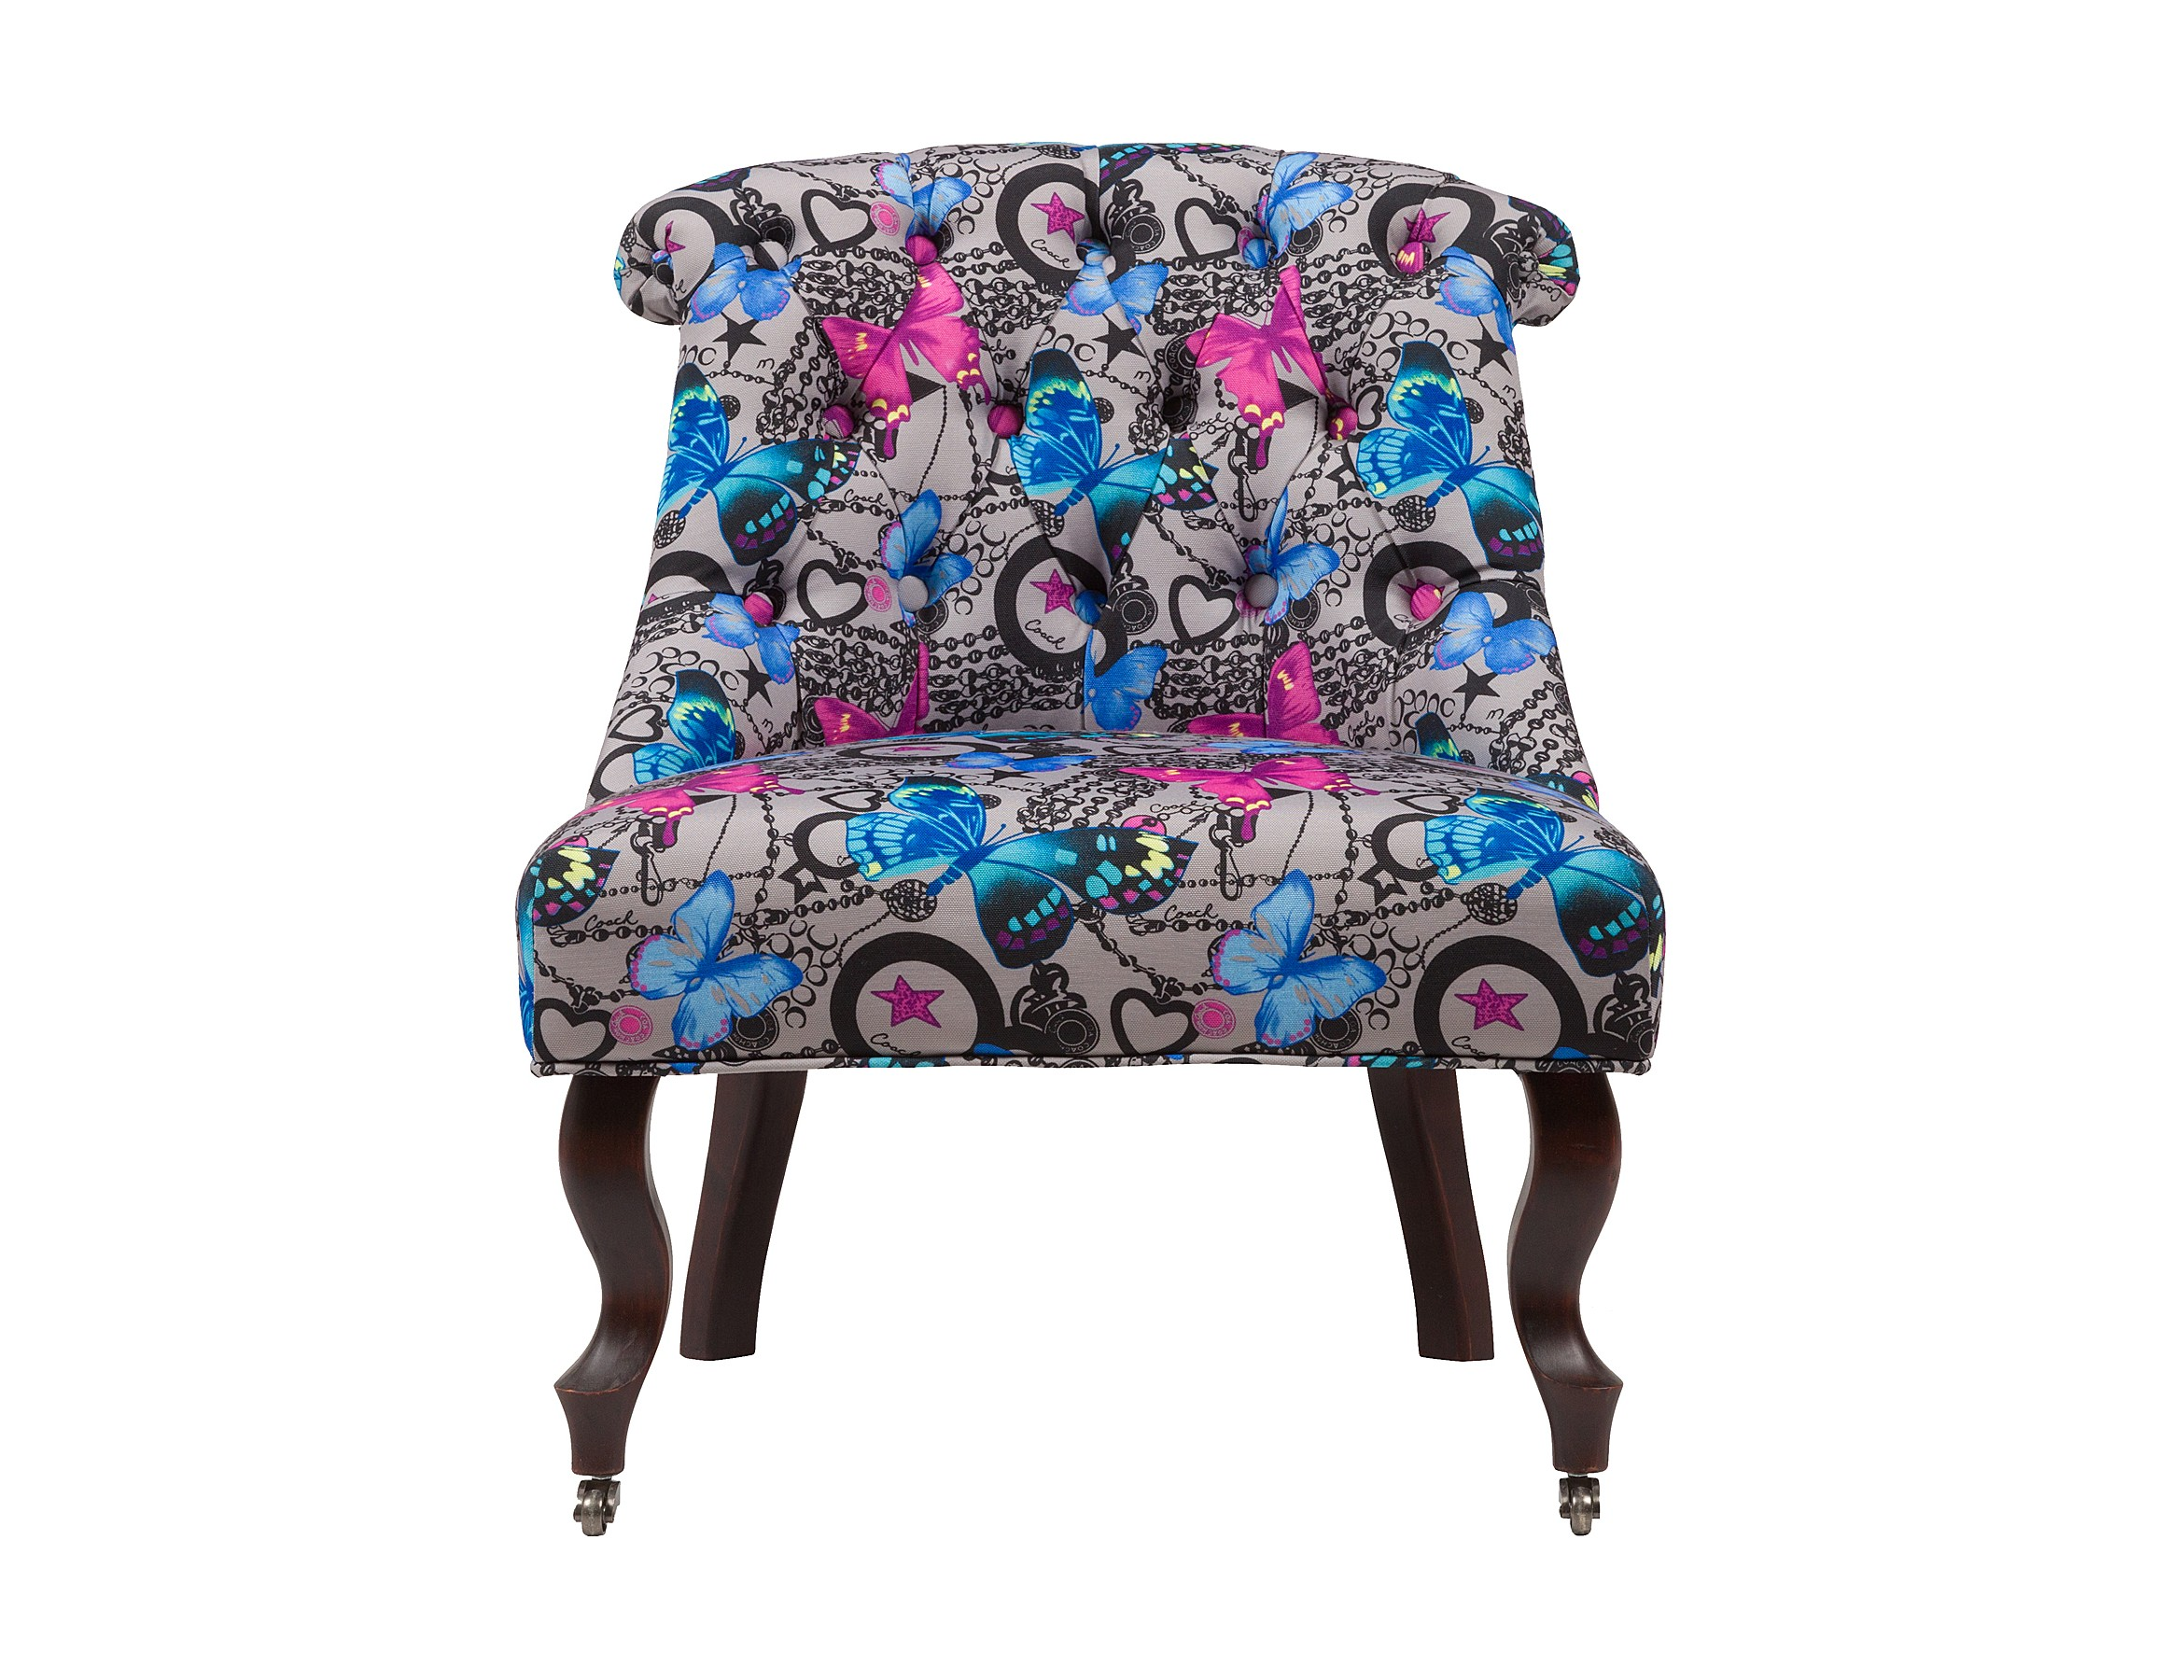 Кресло Amelie French Country ChairПолукресла<br><br><br>Material: Текстиль<br>Width см: 69<br>Depth см: 64<br>Height см: 76